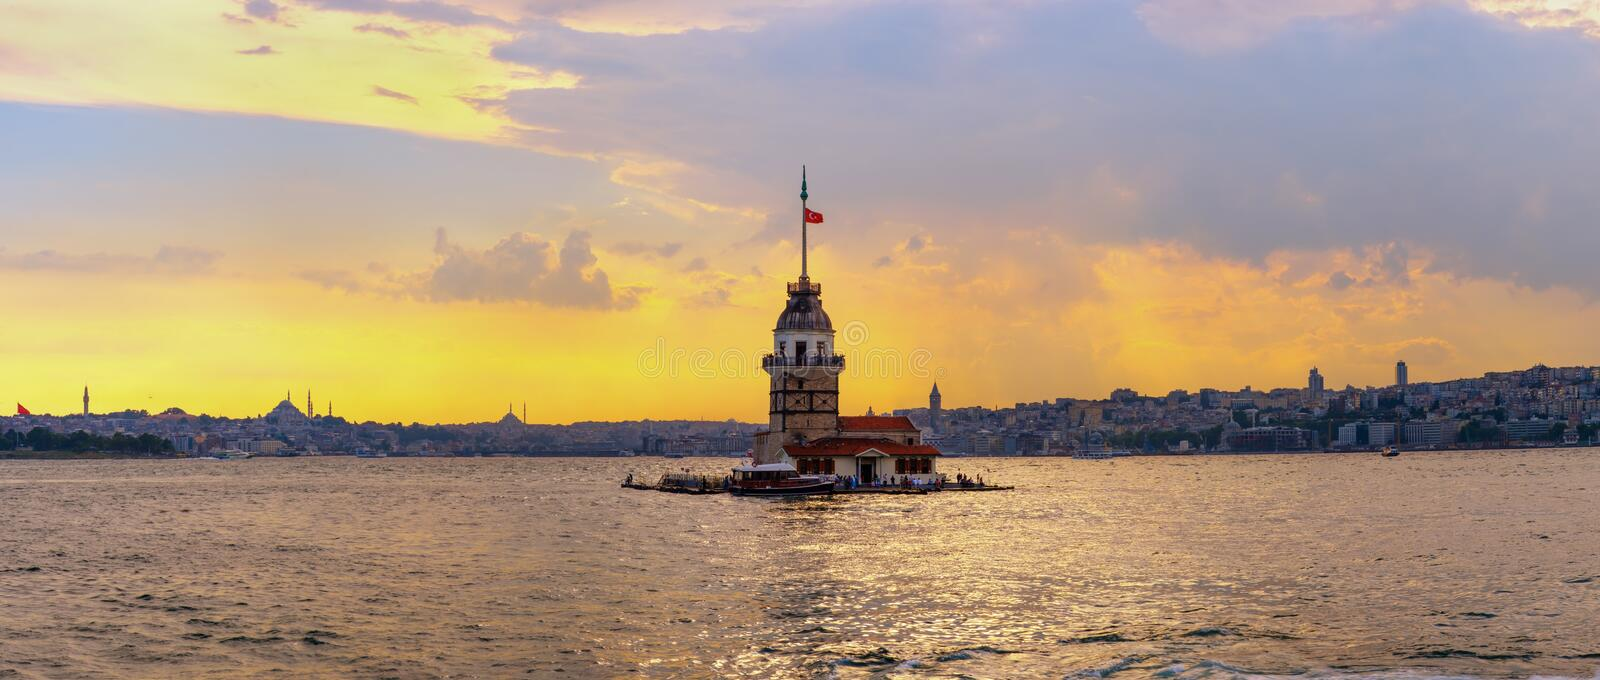 Sunset in Istanbul, Turkey. View of the Maiden Tower and the Bosphorus stock photo